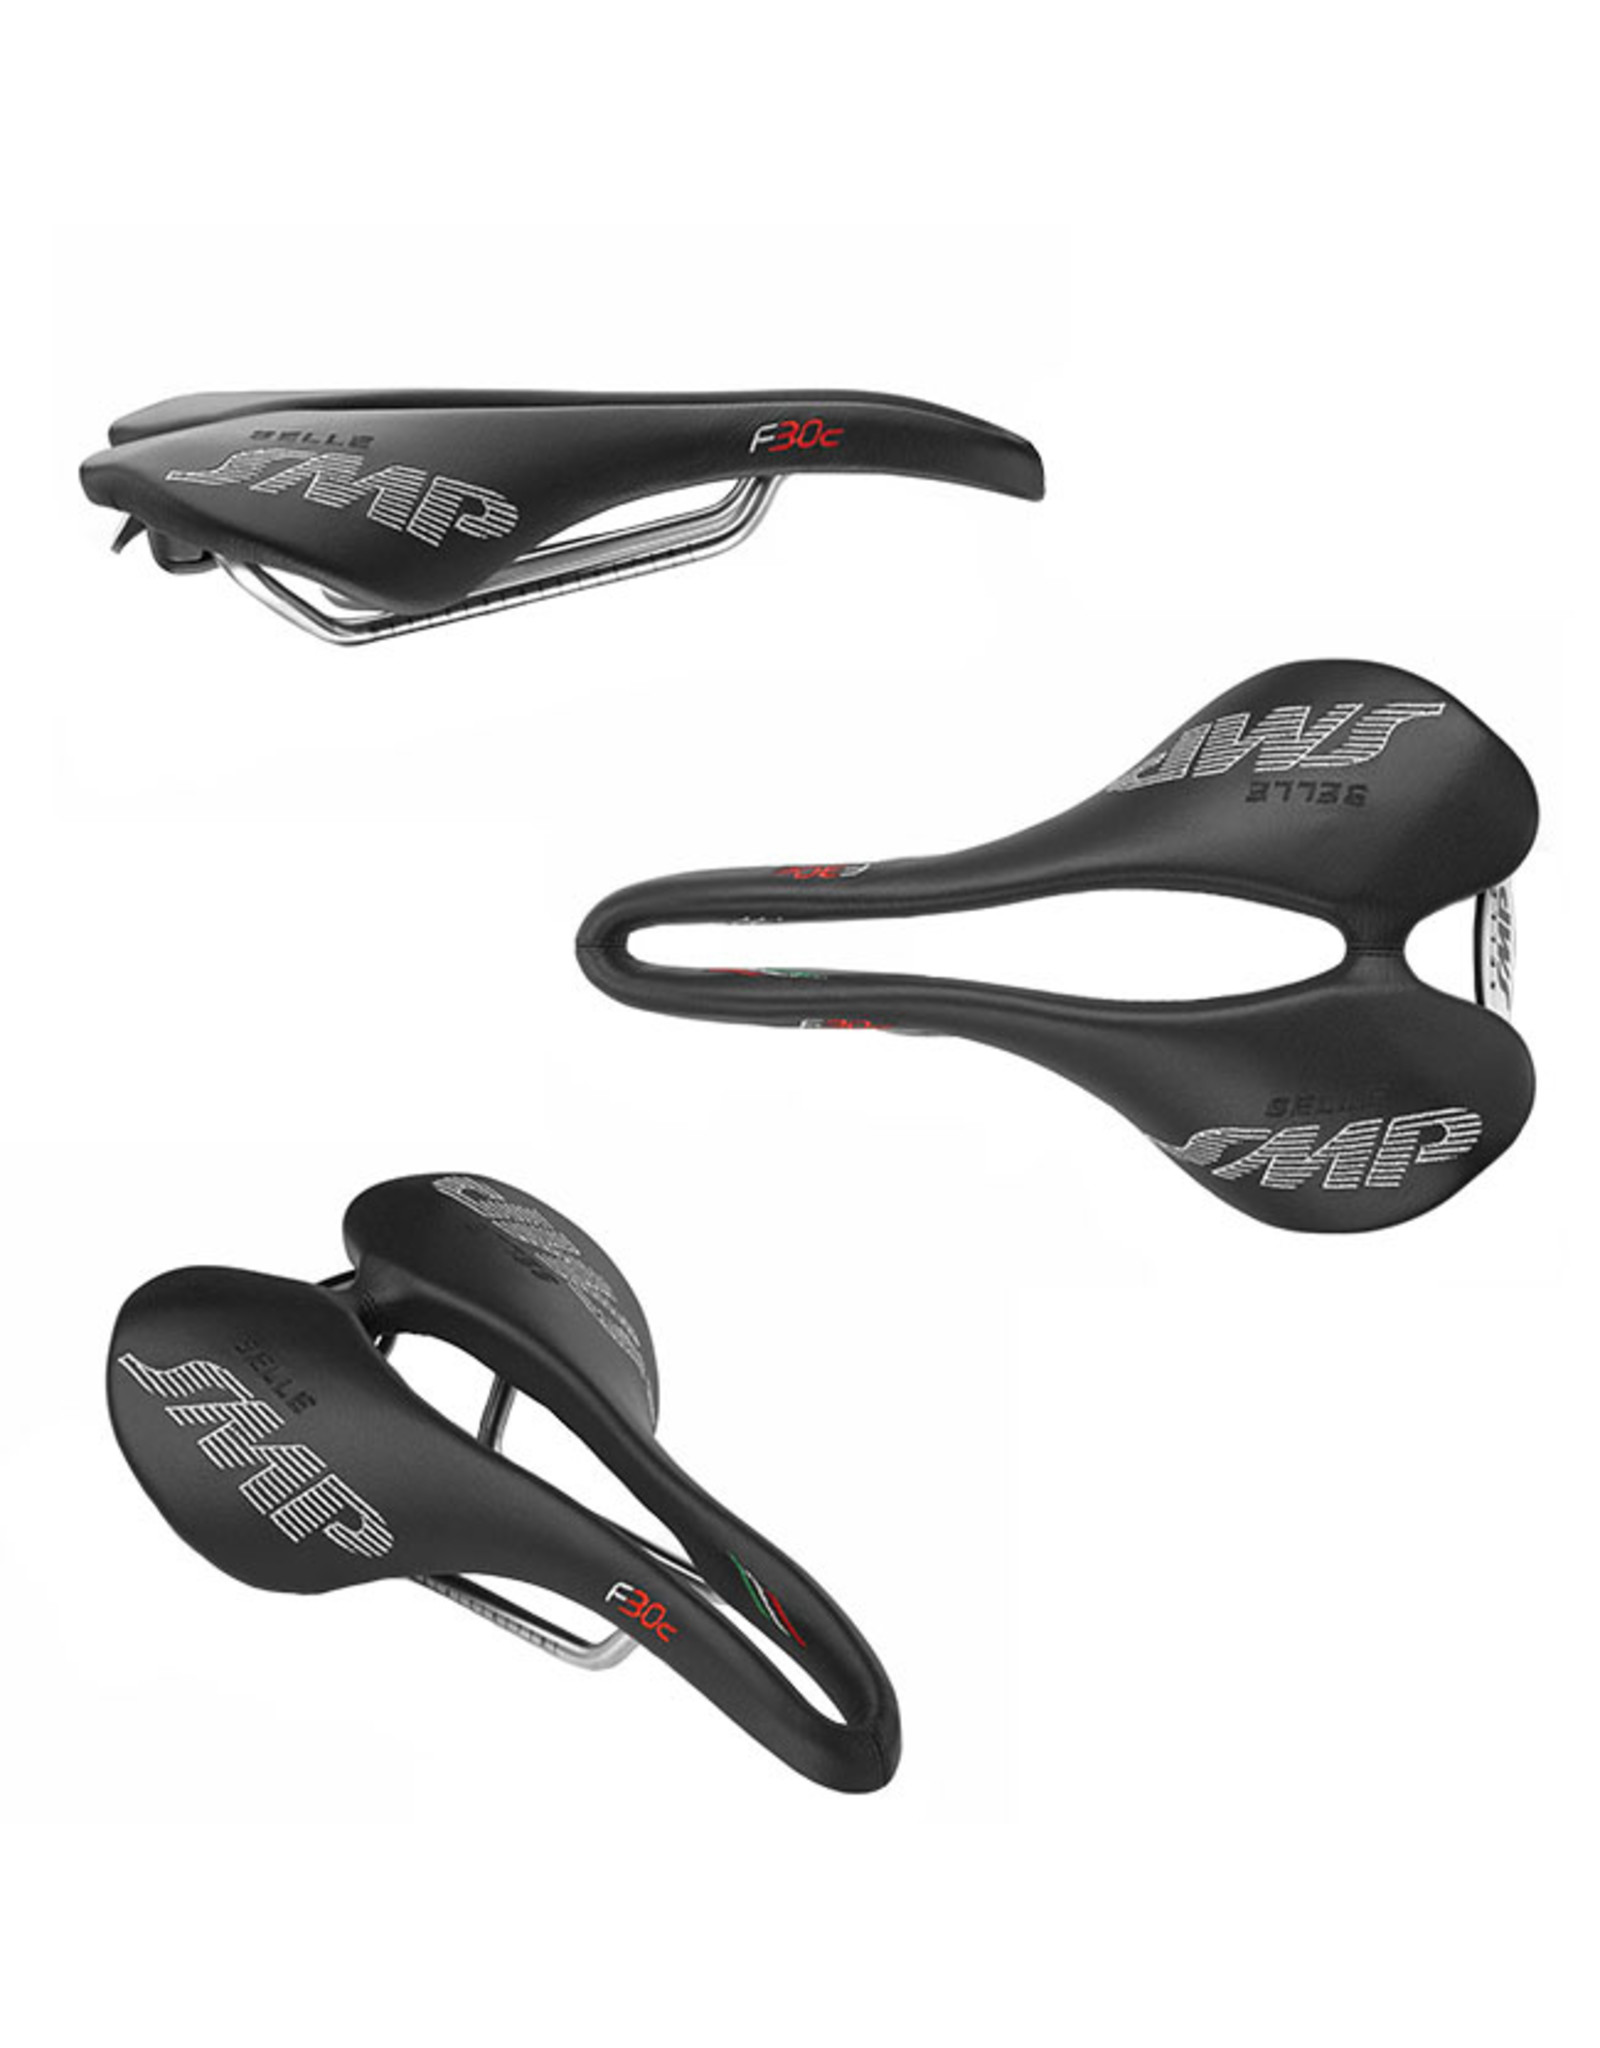 Selle SMP Selle SMP Profesional Saddle